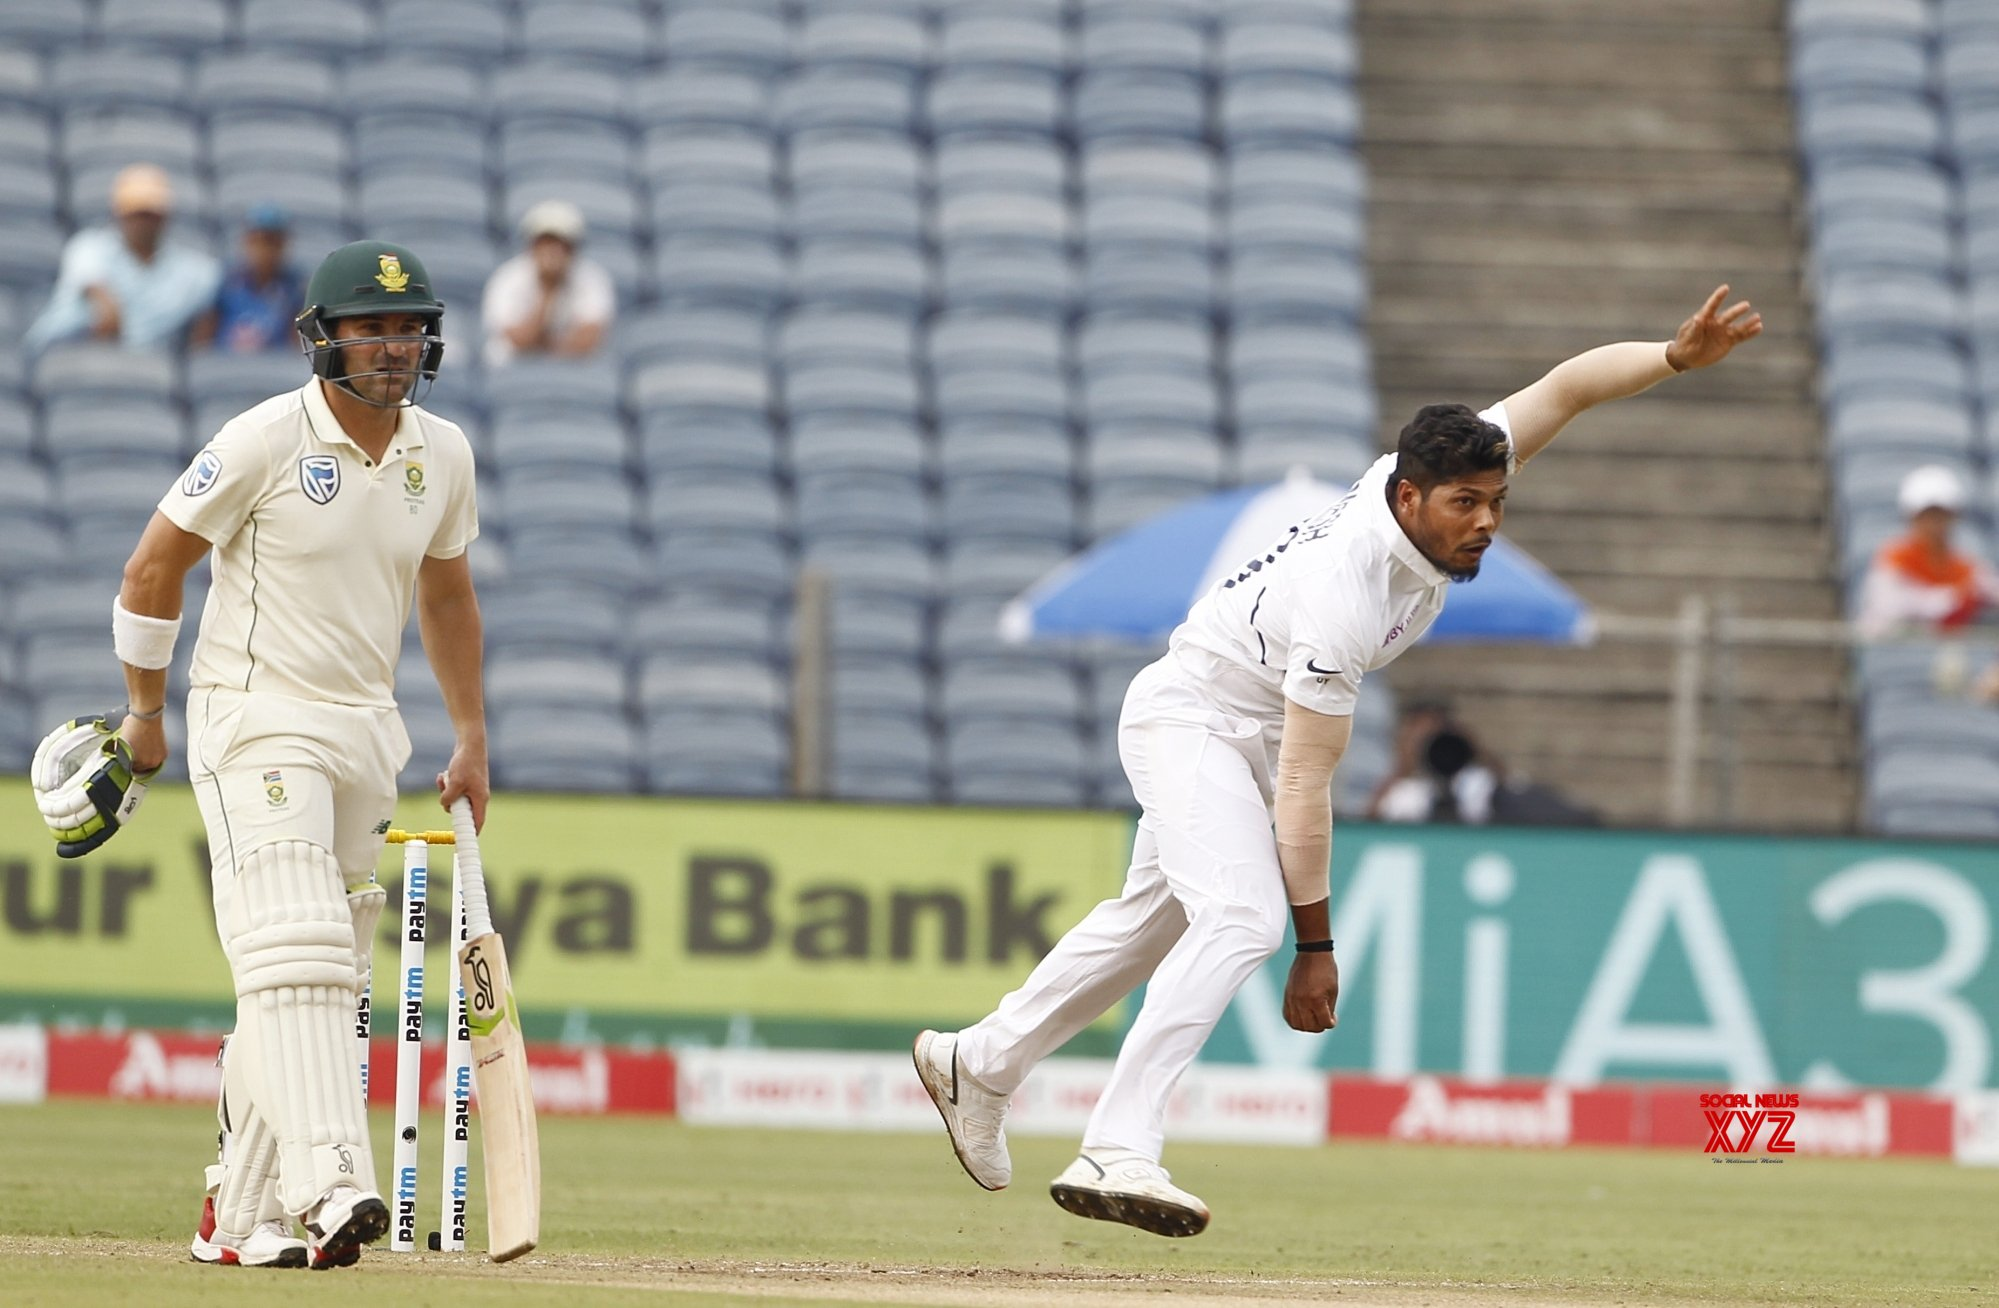 Pune: 2nd Test - India Vs South Africa - Day 2 (Batch - 21) #Gallery